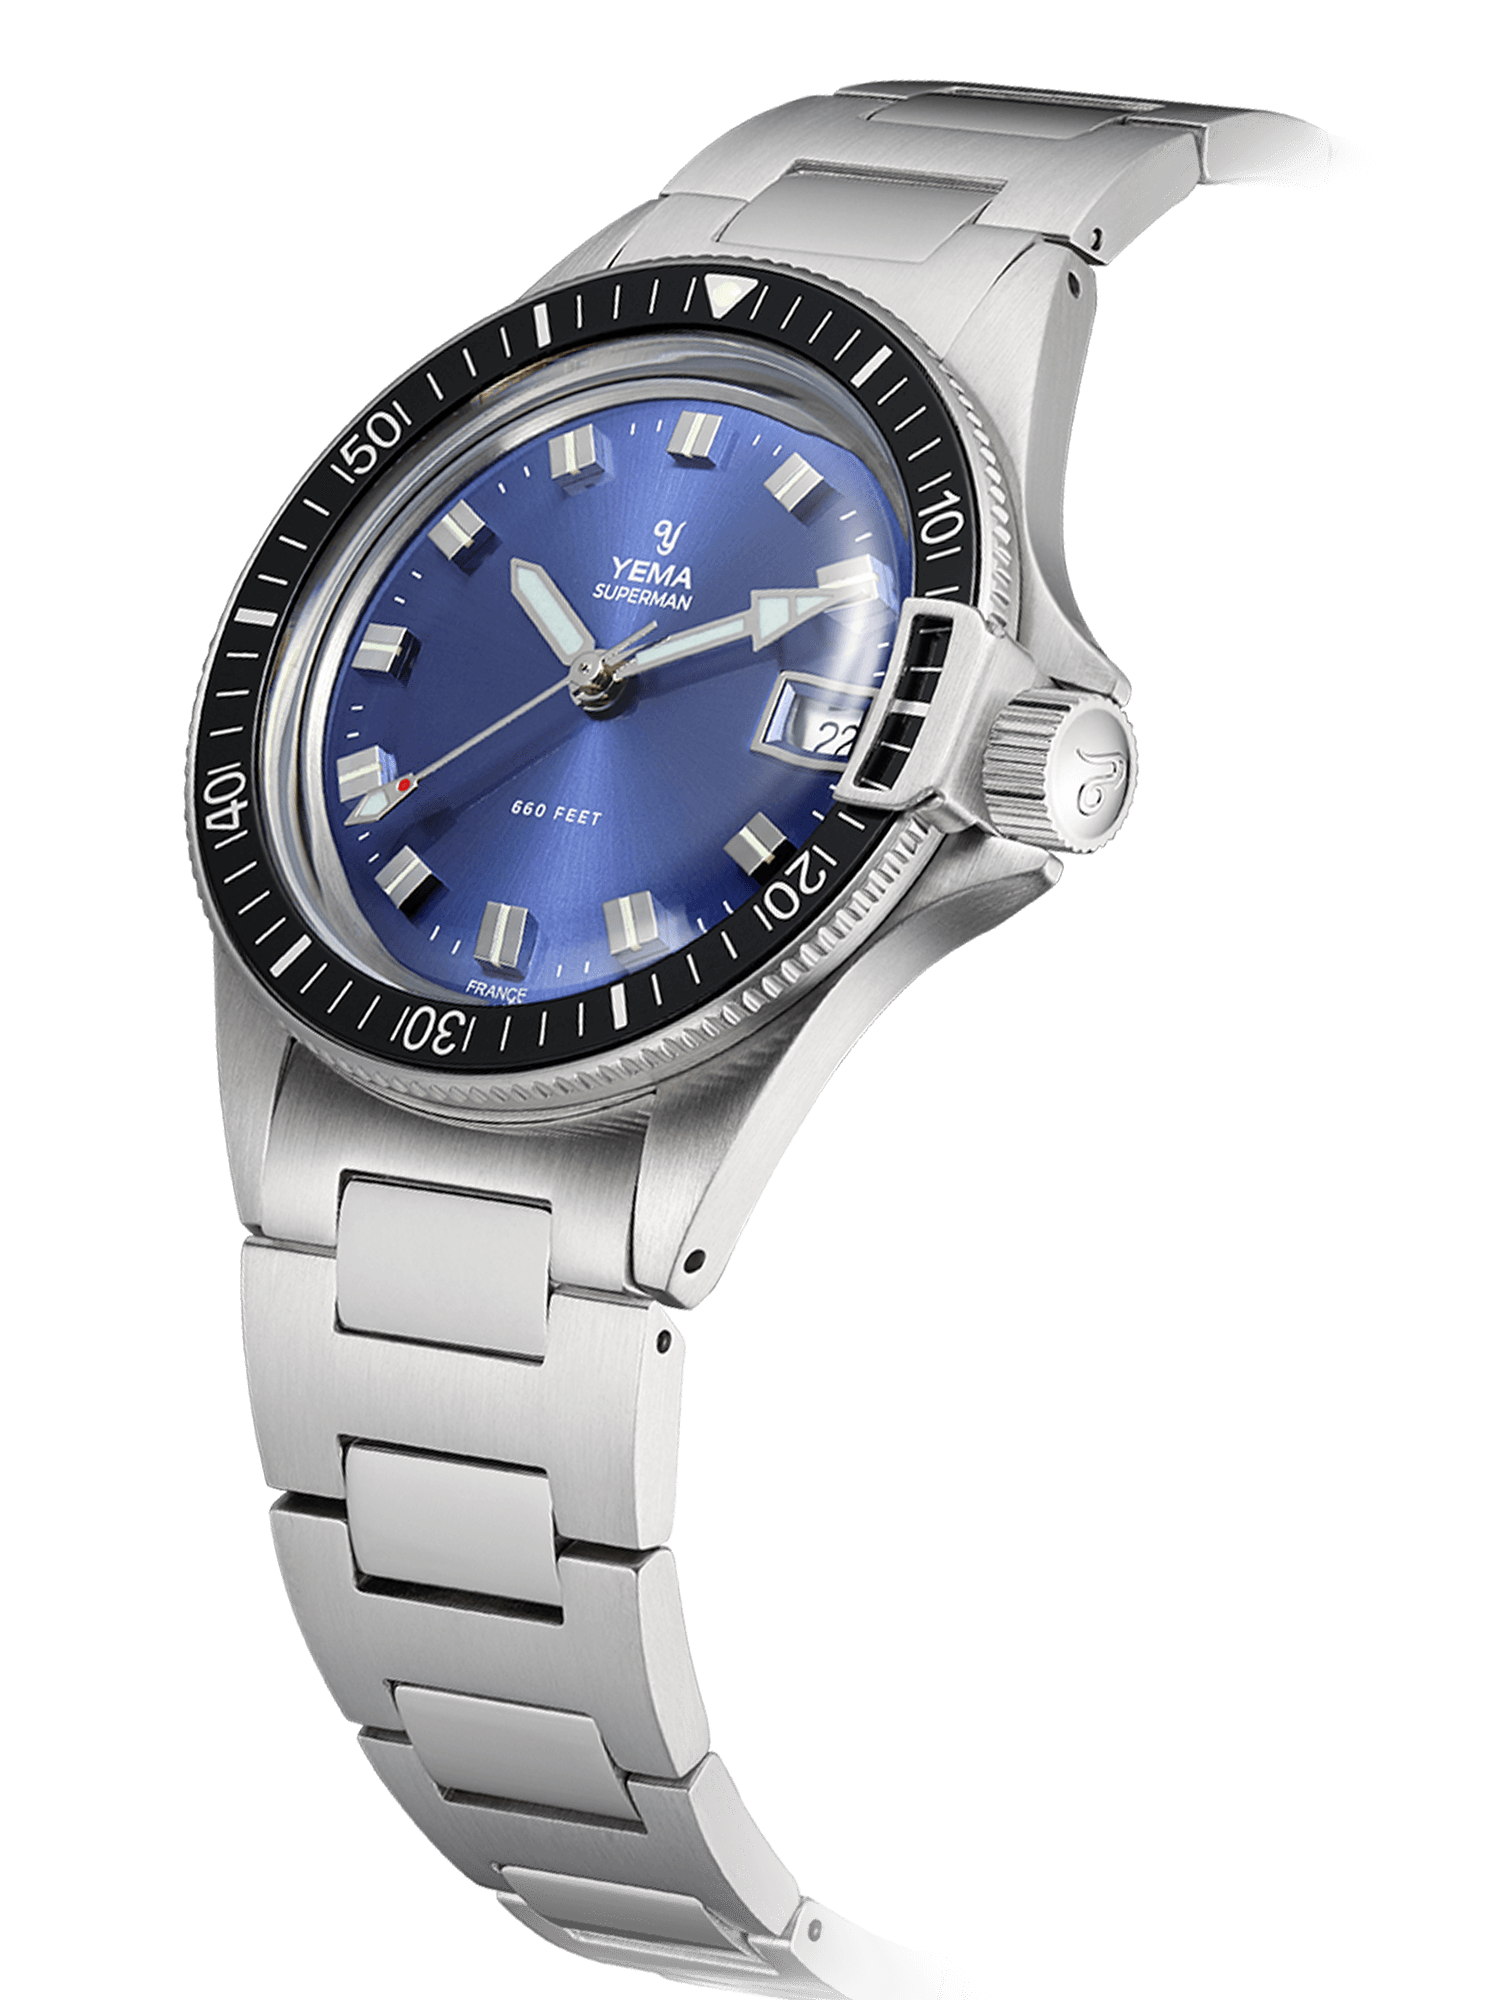 YEMA Superman Heritage Blue quartz, bezel with black insert, domed mineral crystal.